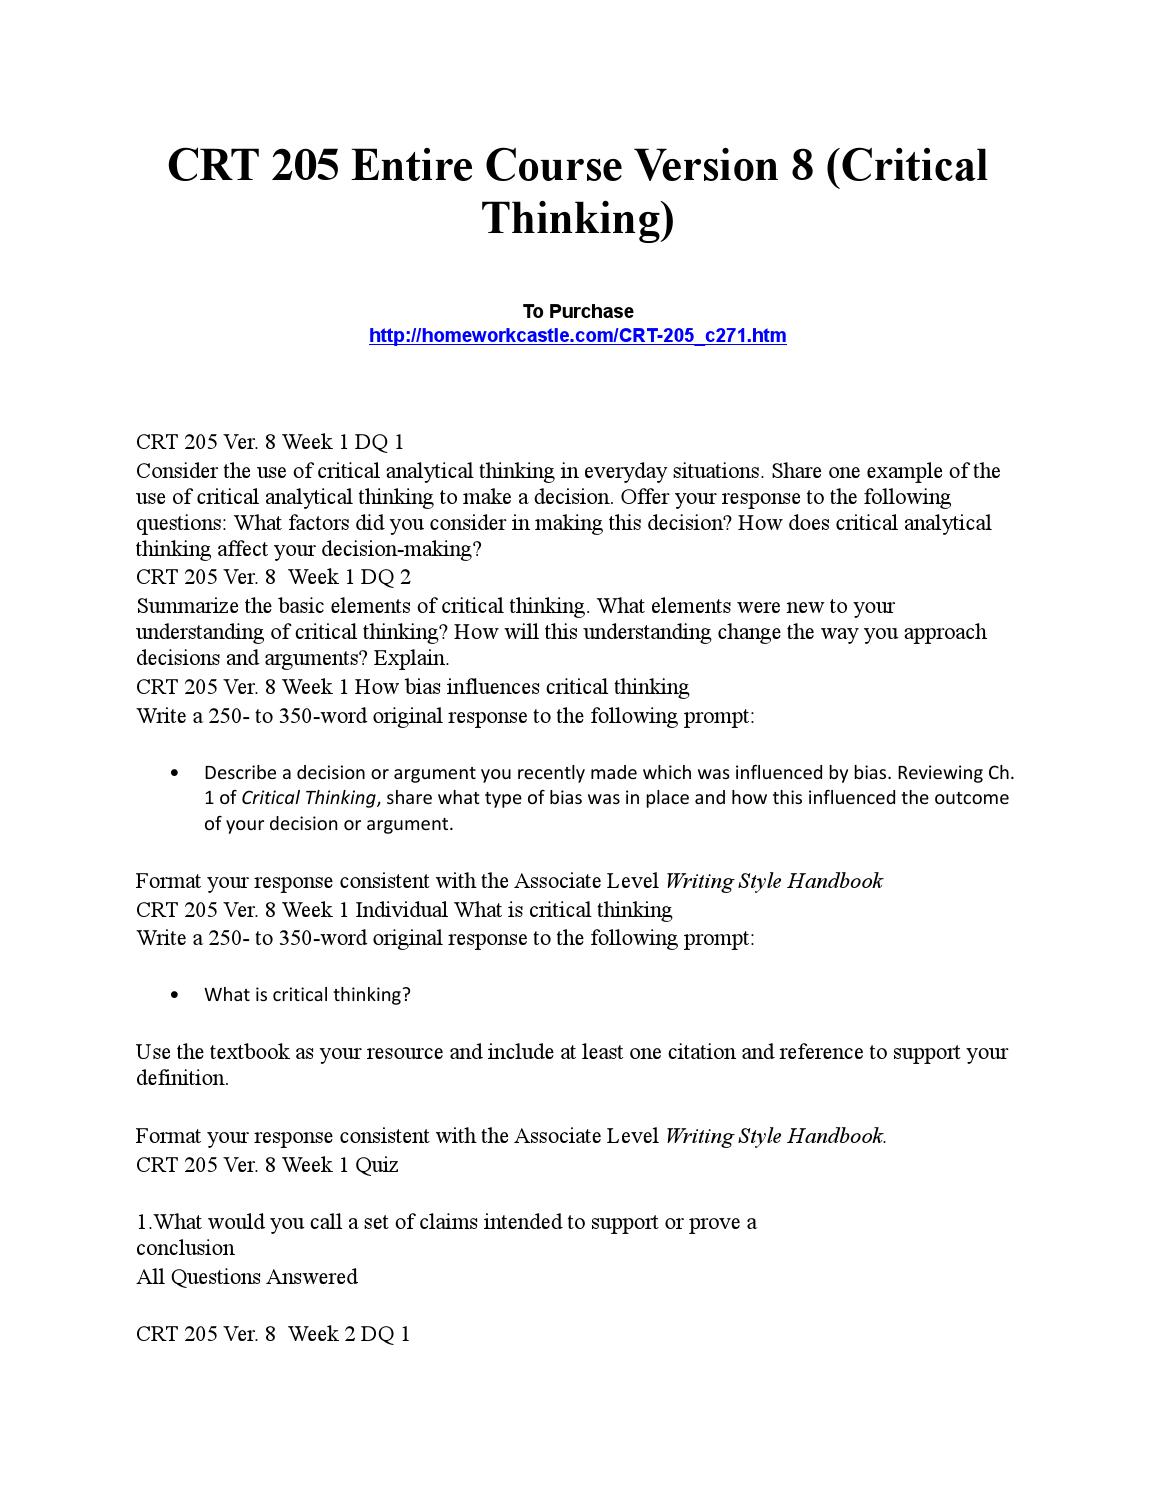 crt 205 critical thinking final week 9 Phoenix crt 205 entire course critical thinking version 8  dq 1, dq 2, dq 3, entire course, final paper, individual  acc 205 week 1 exercise 4 basic.